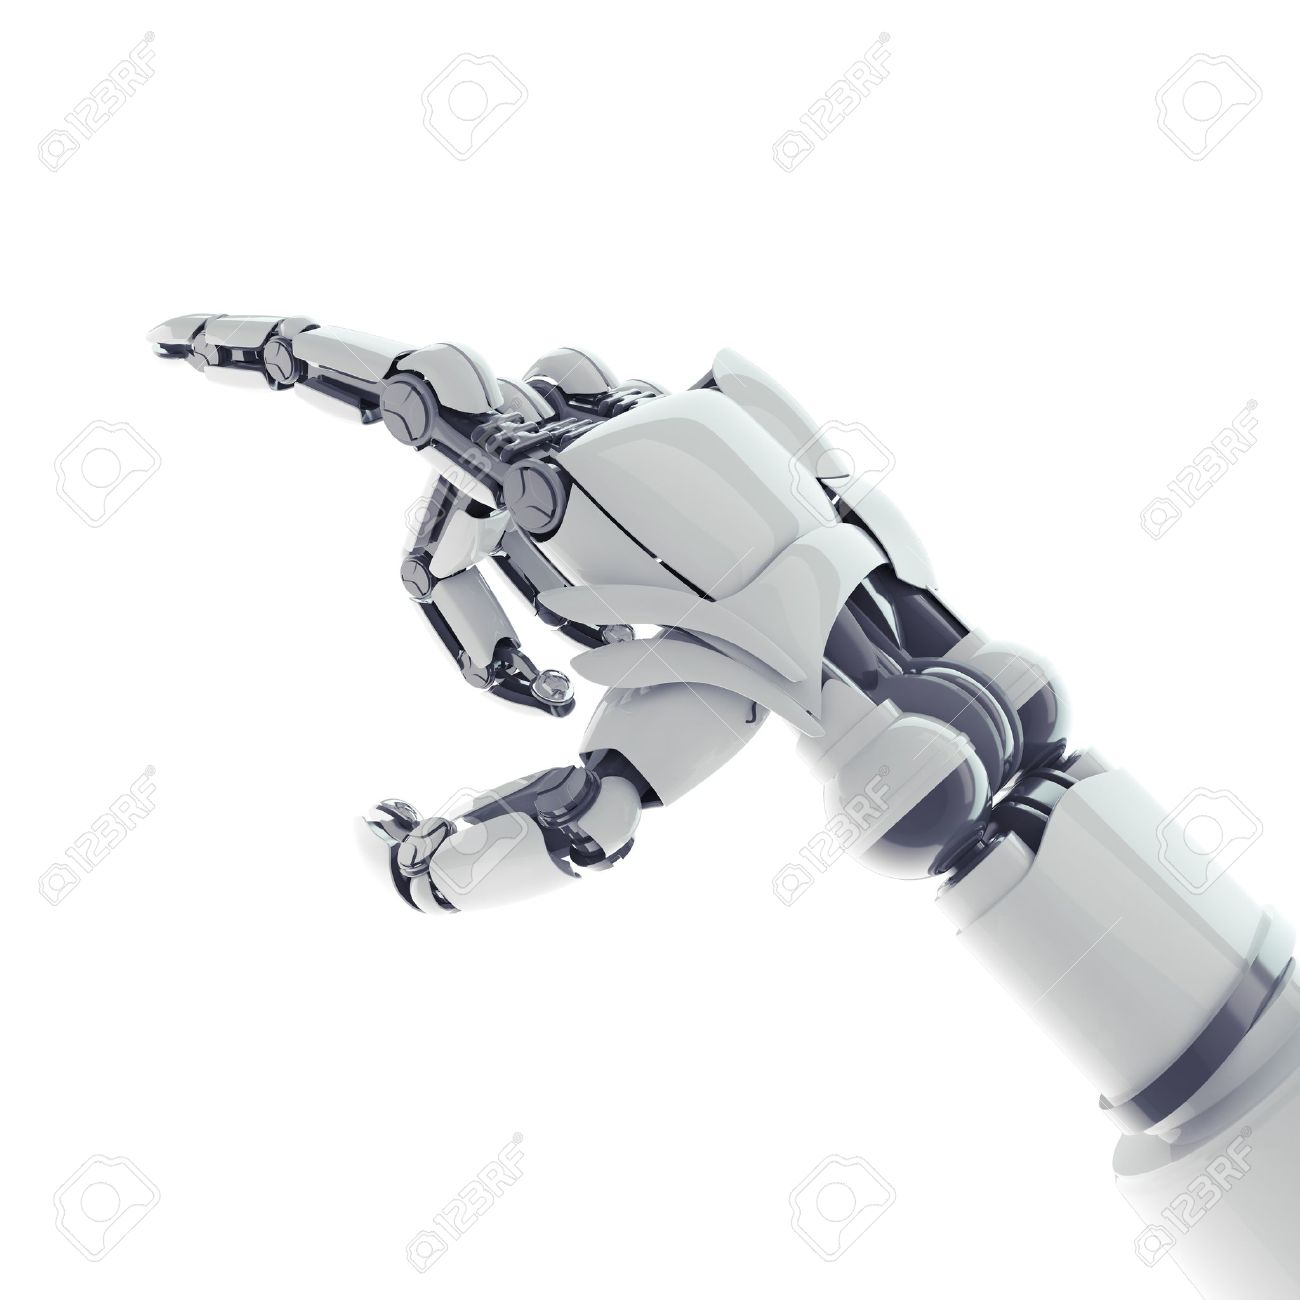 Isolated robotic pointing arm on white background Stock Photo - 17545960